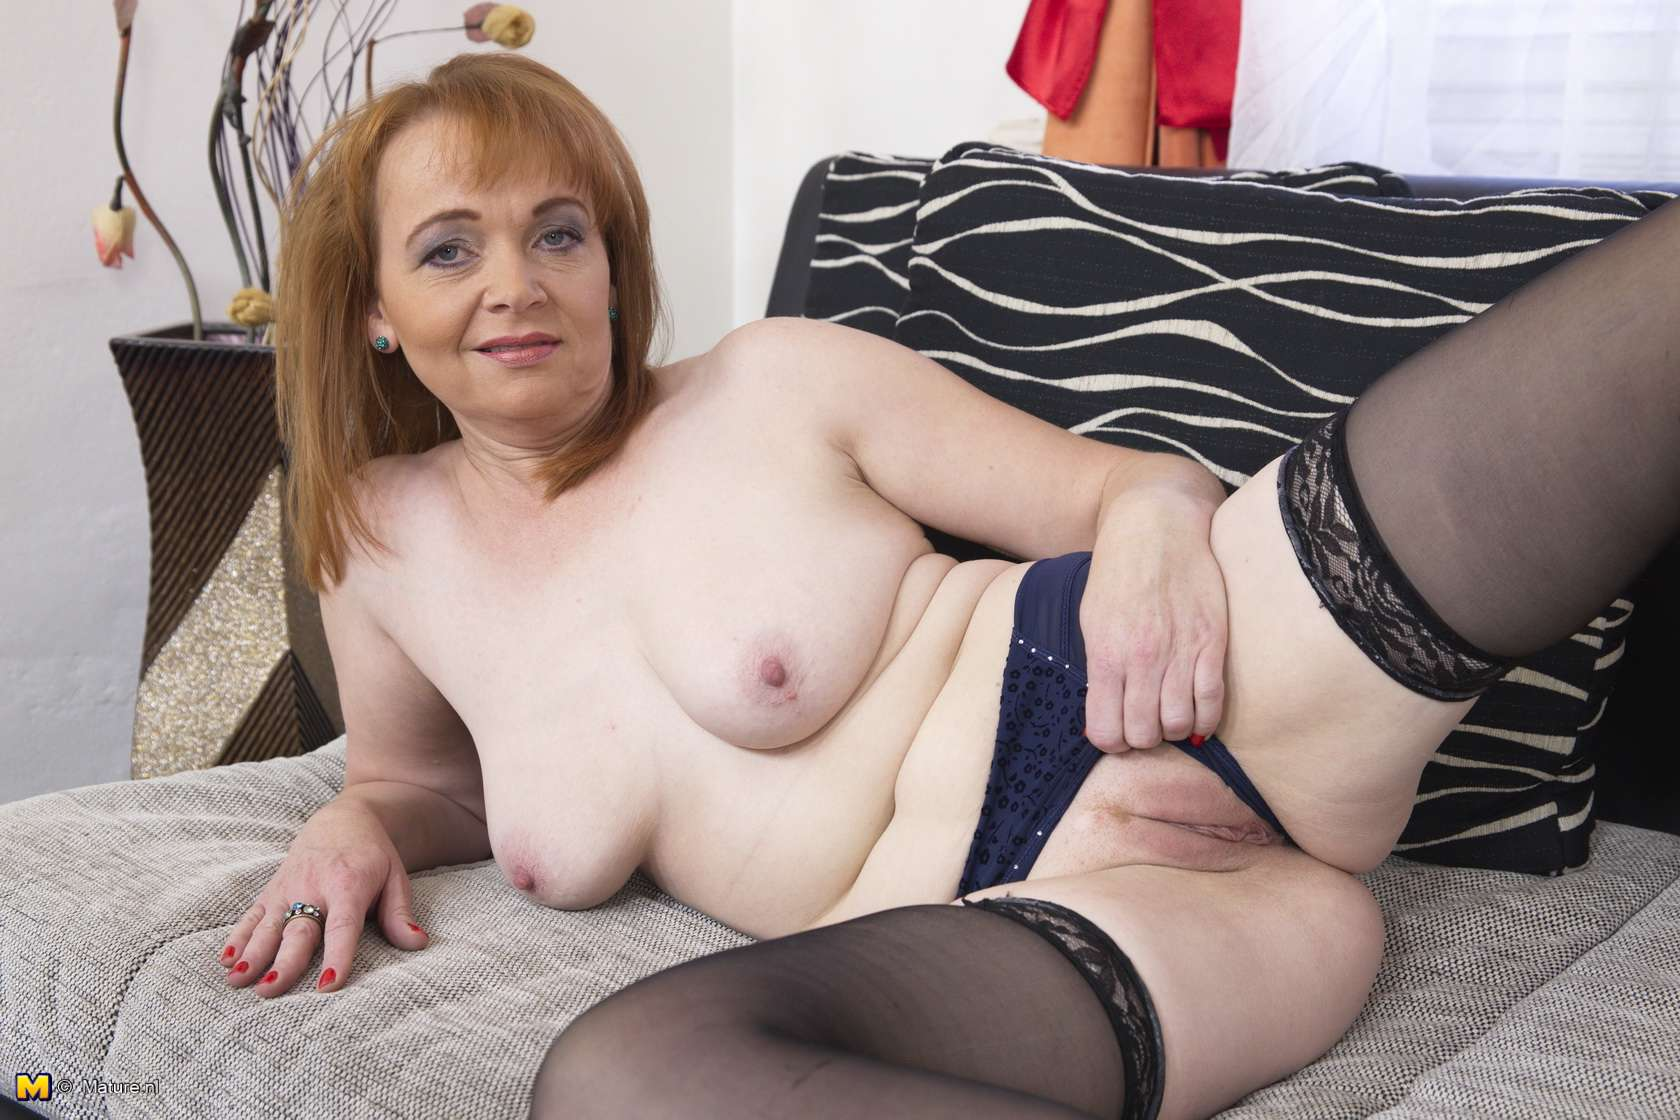 Naughty mature lady playing with her dildo